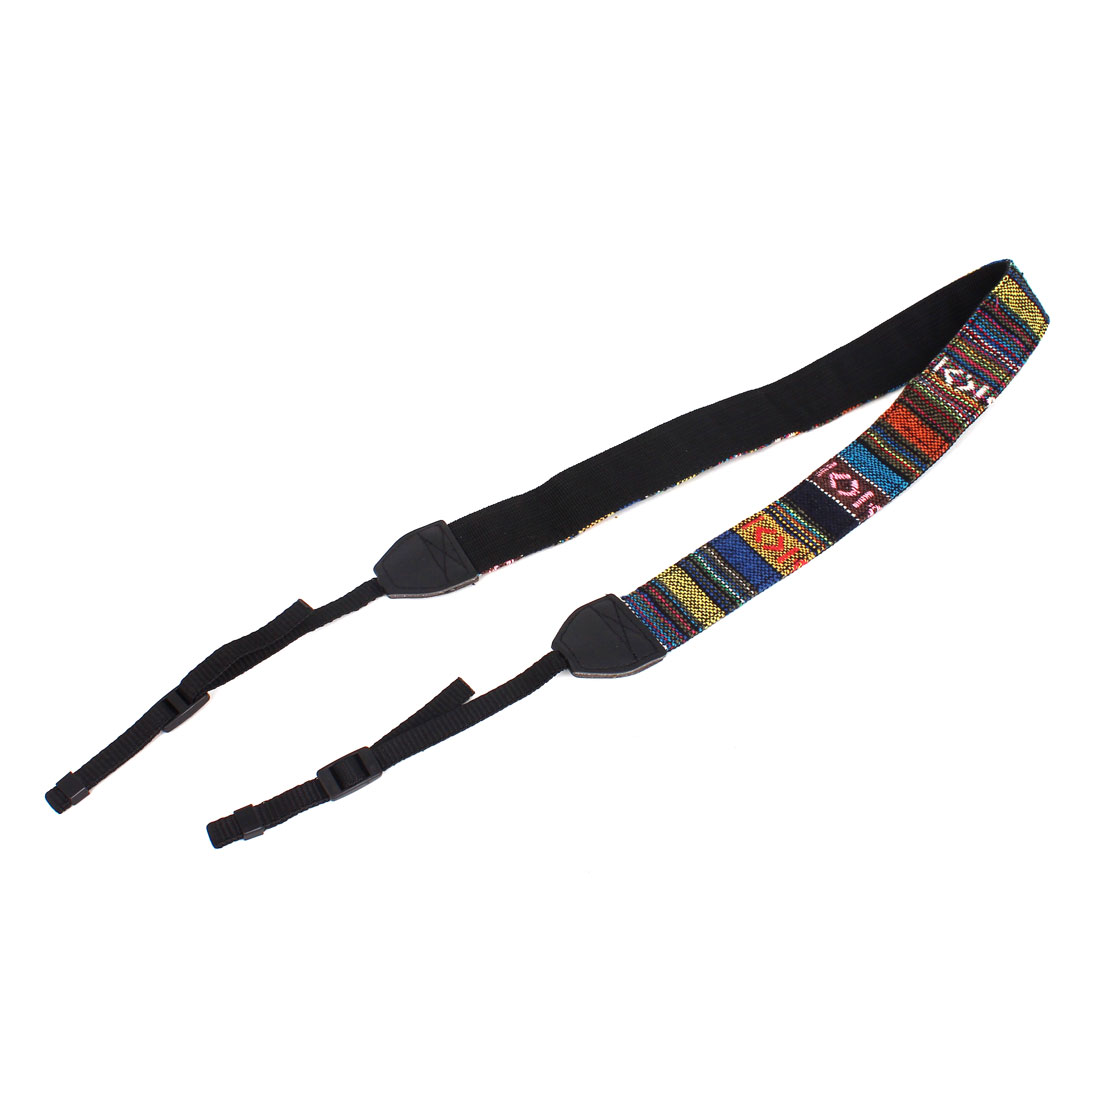 Vintage Style Camera Shoulder Neck Strap Belt Multicolor for Digital SLR DSLR